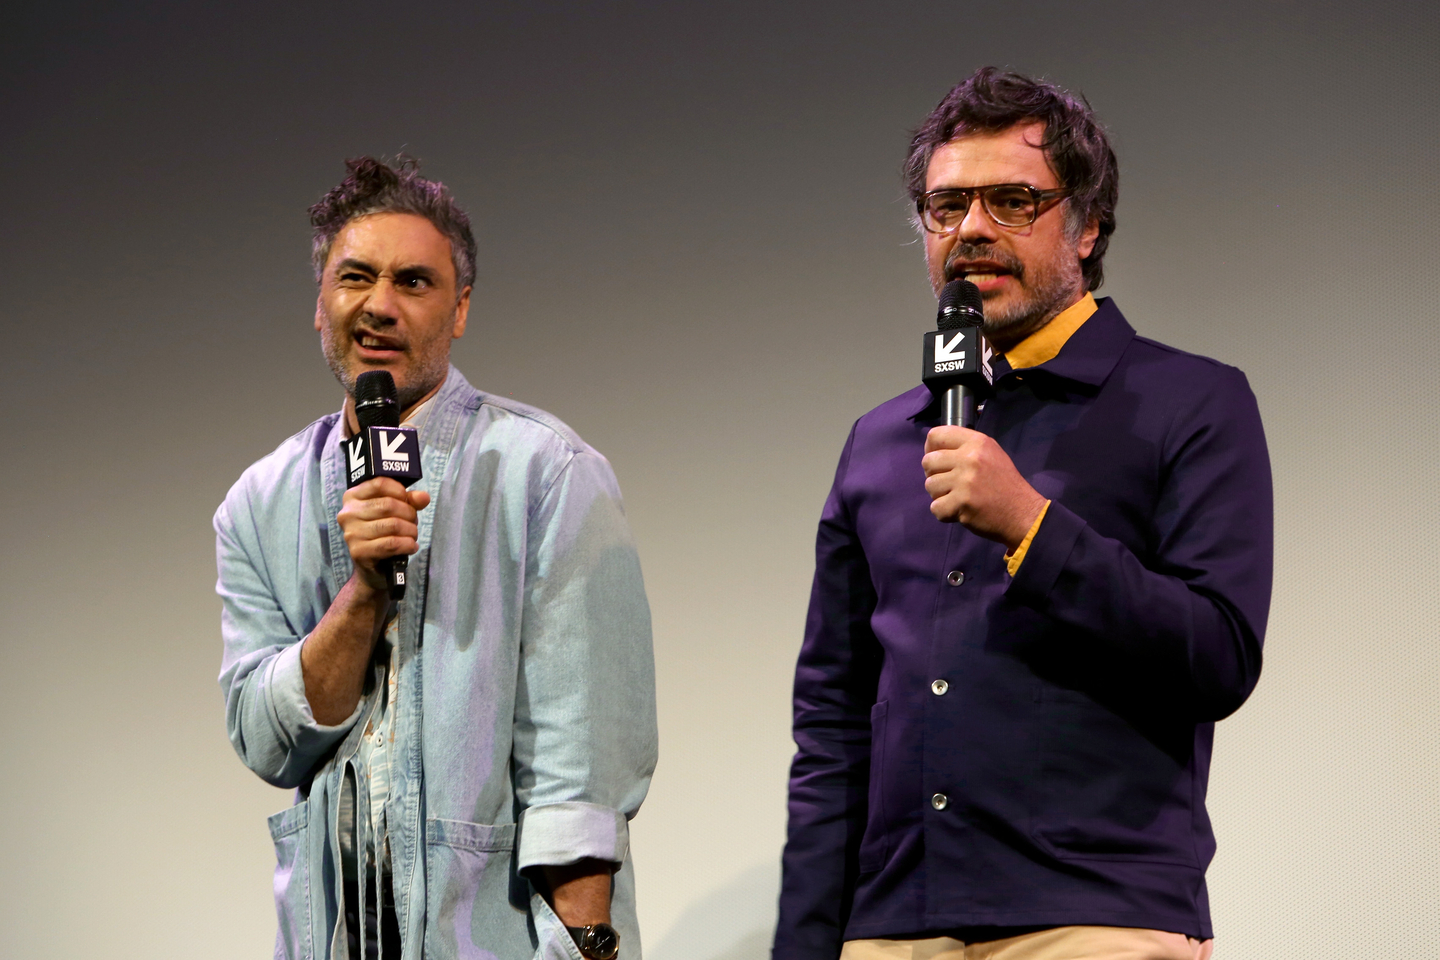 Taika Waititi and Jemaine Clement speak onstage at the What We Do in the Shadows world premiere at the Paramount Theatre. Photo by Travis P Ball/Getty Images for SXSW